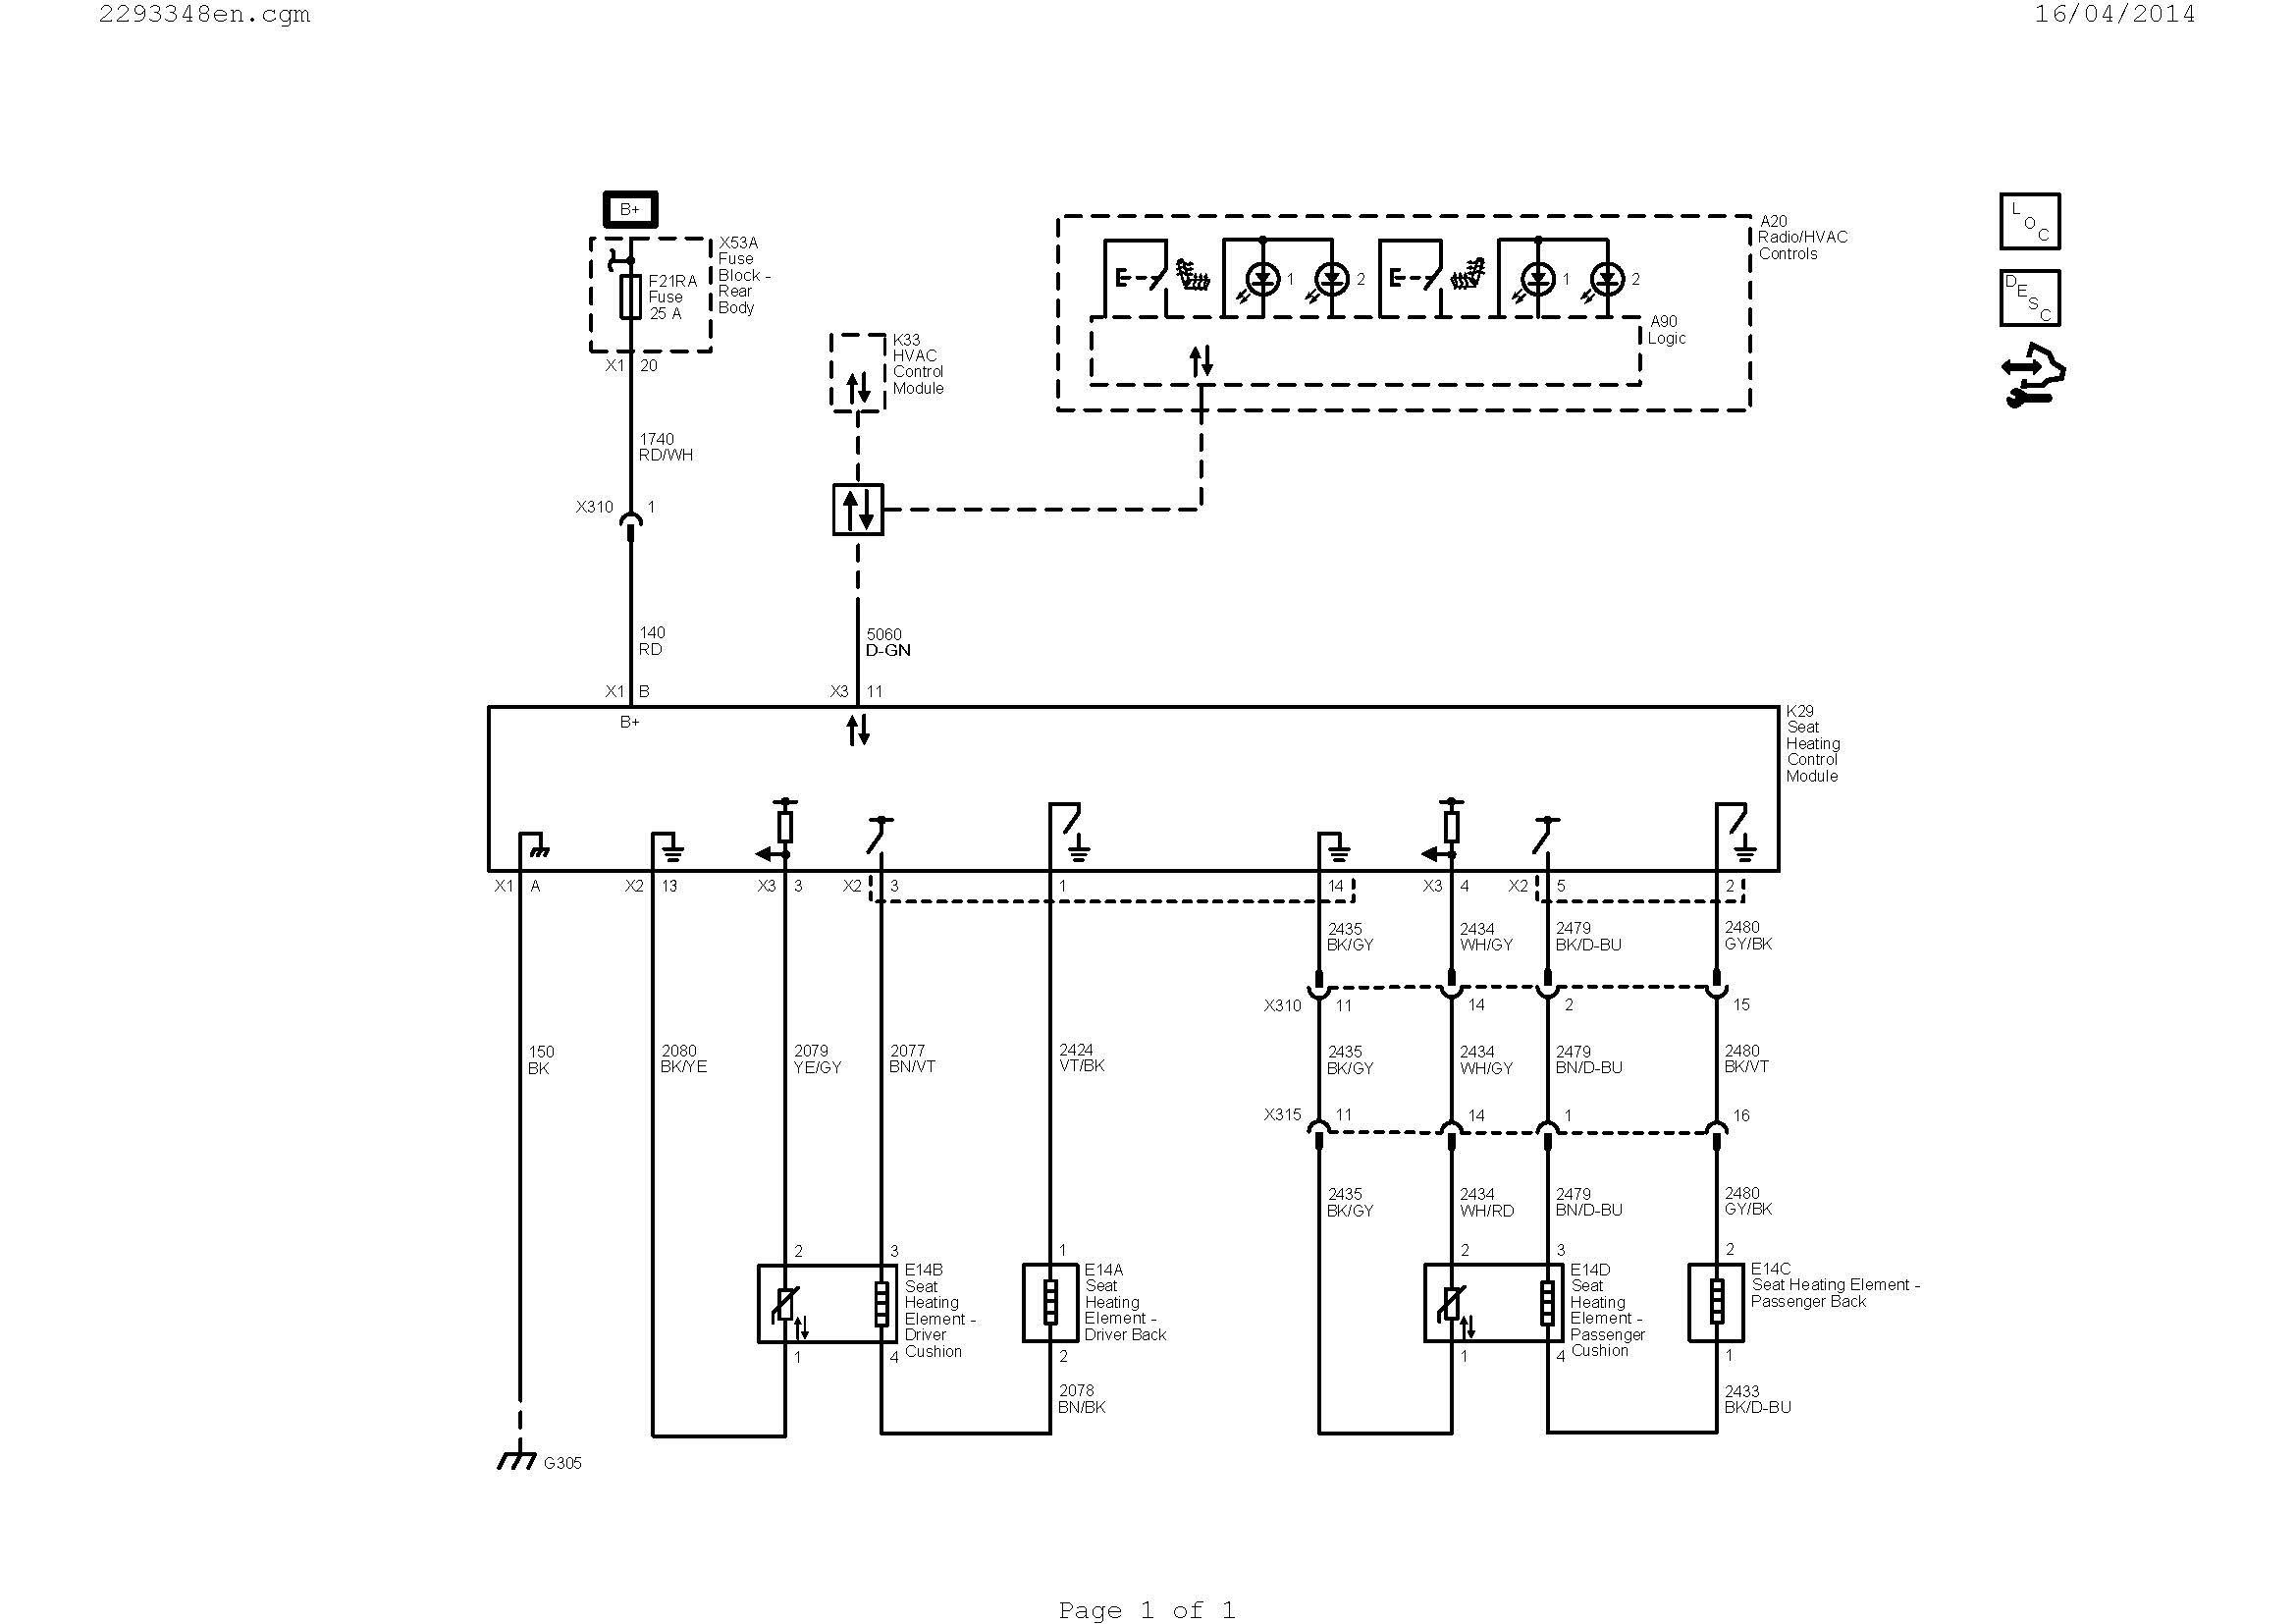 harrington hoist wiring diagram Download-matrix switch wiring diagram wire center u2022 rh 66 42 83 38 Harrington Hoist and Crane 9-d